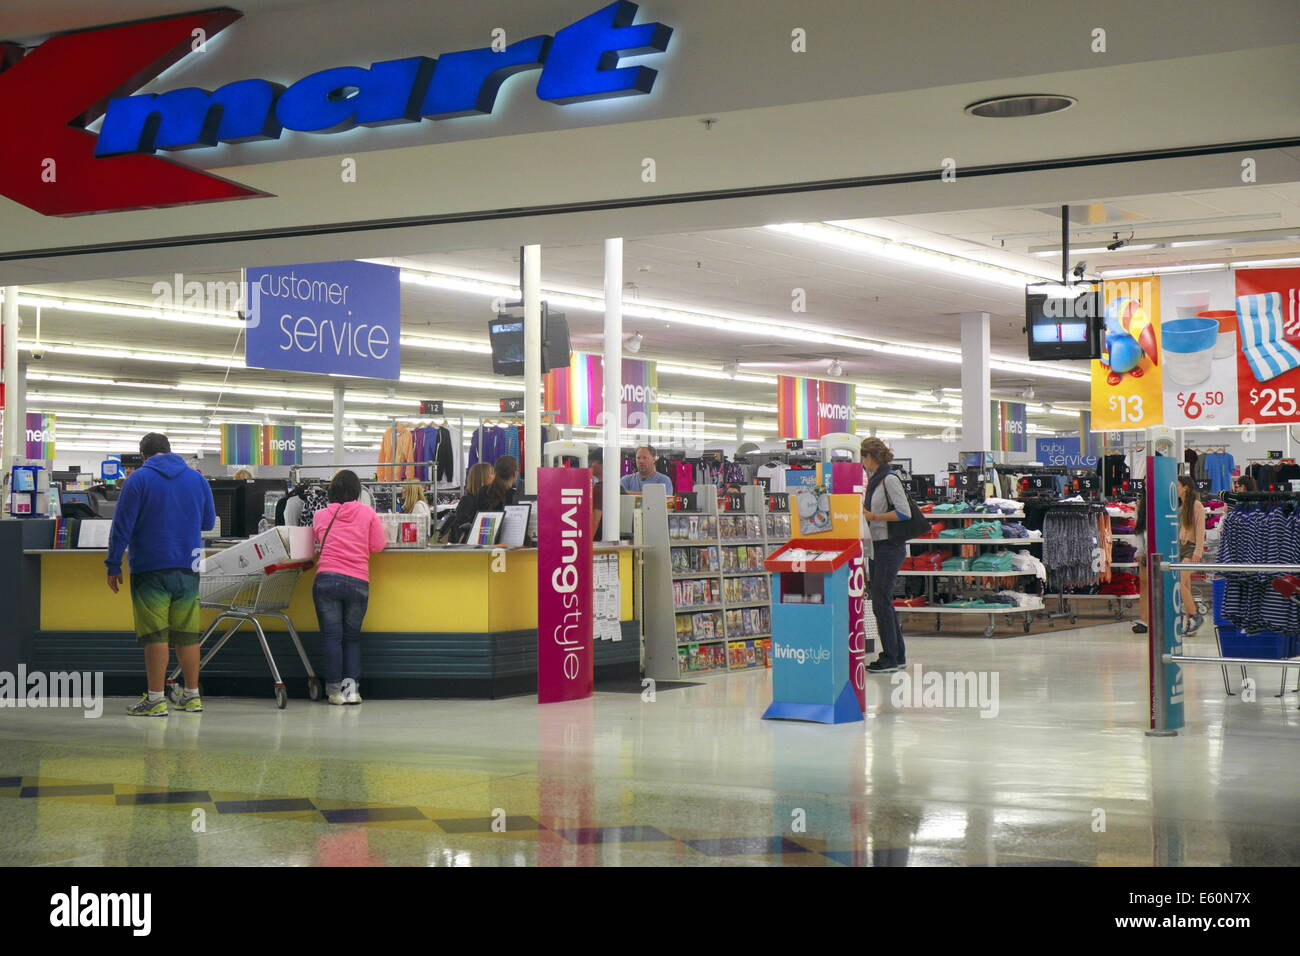 How Many Stores Does Sears Have Left? - 24/7 Wall St.